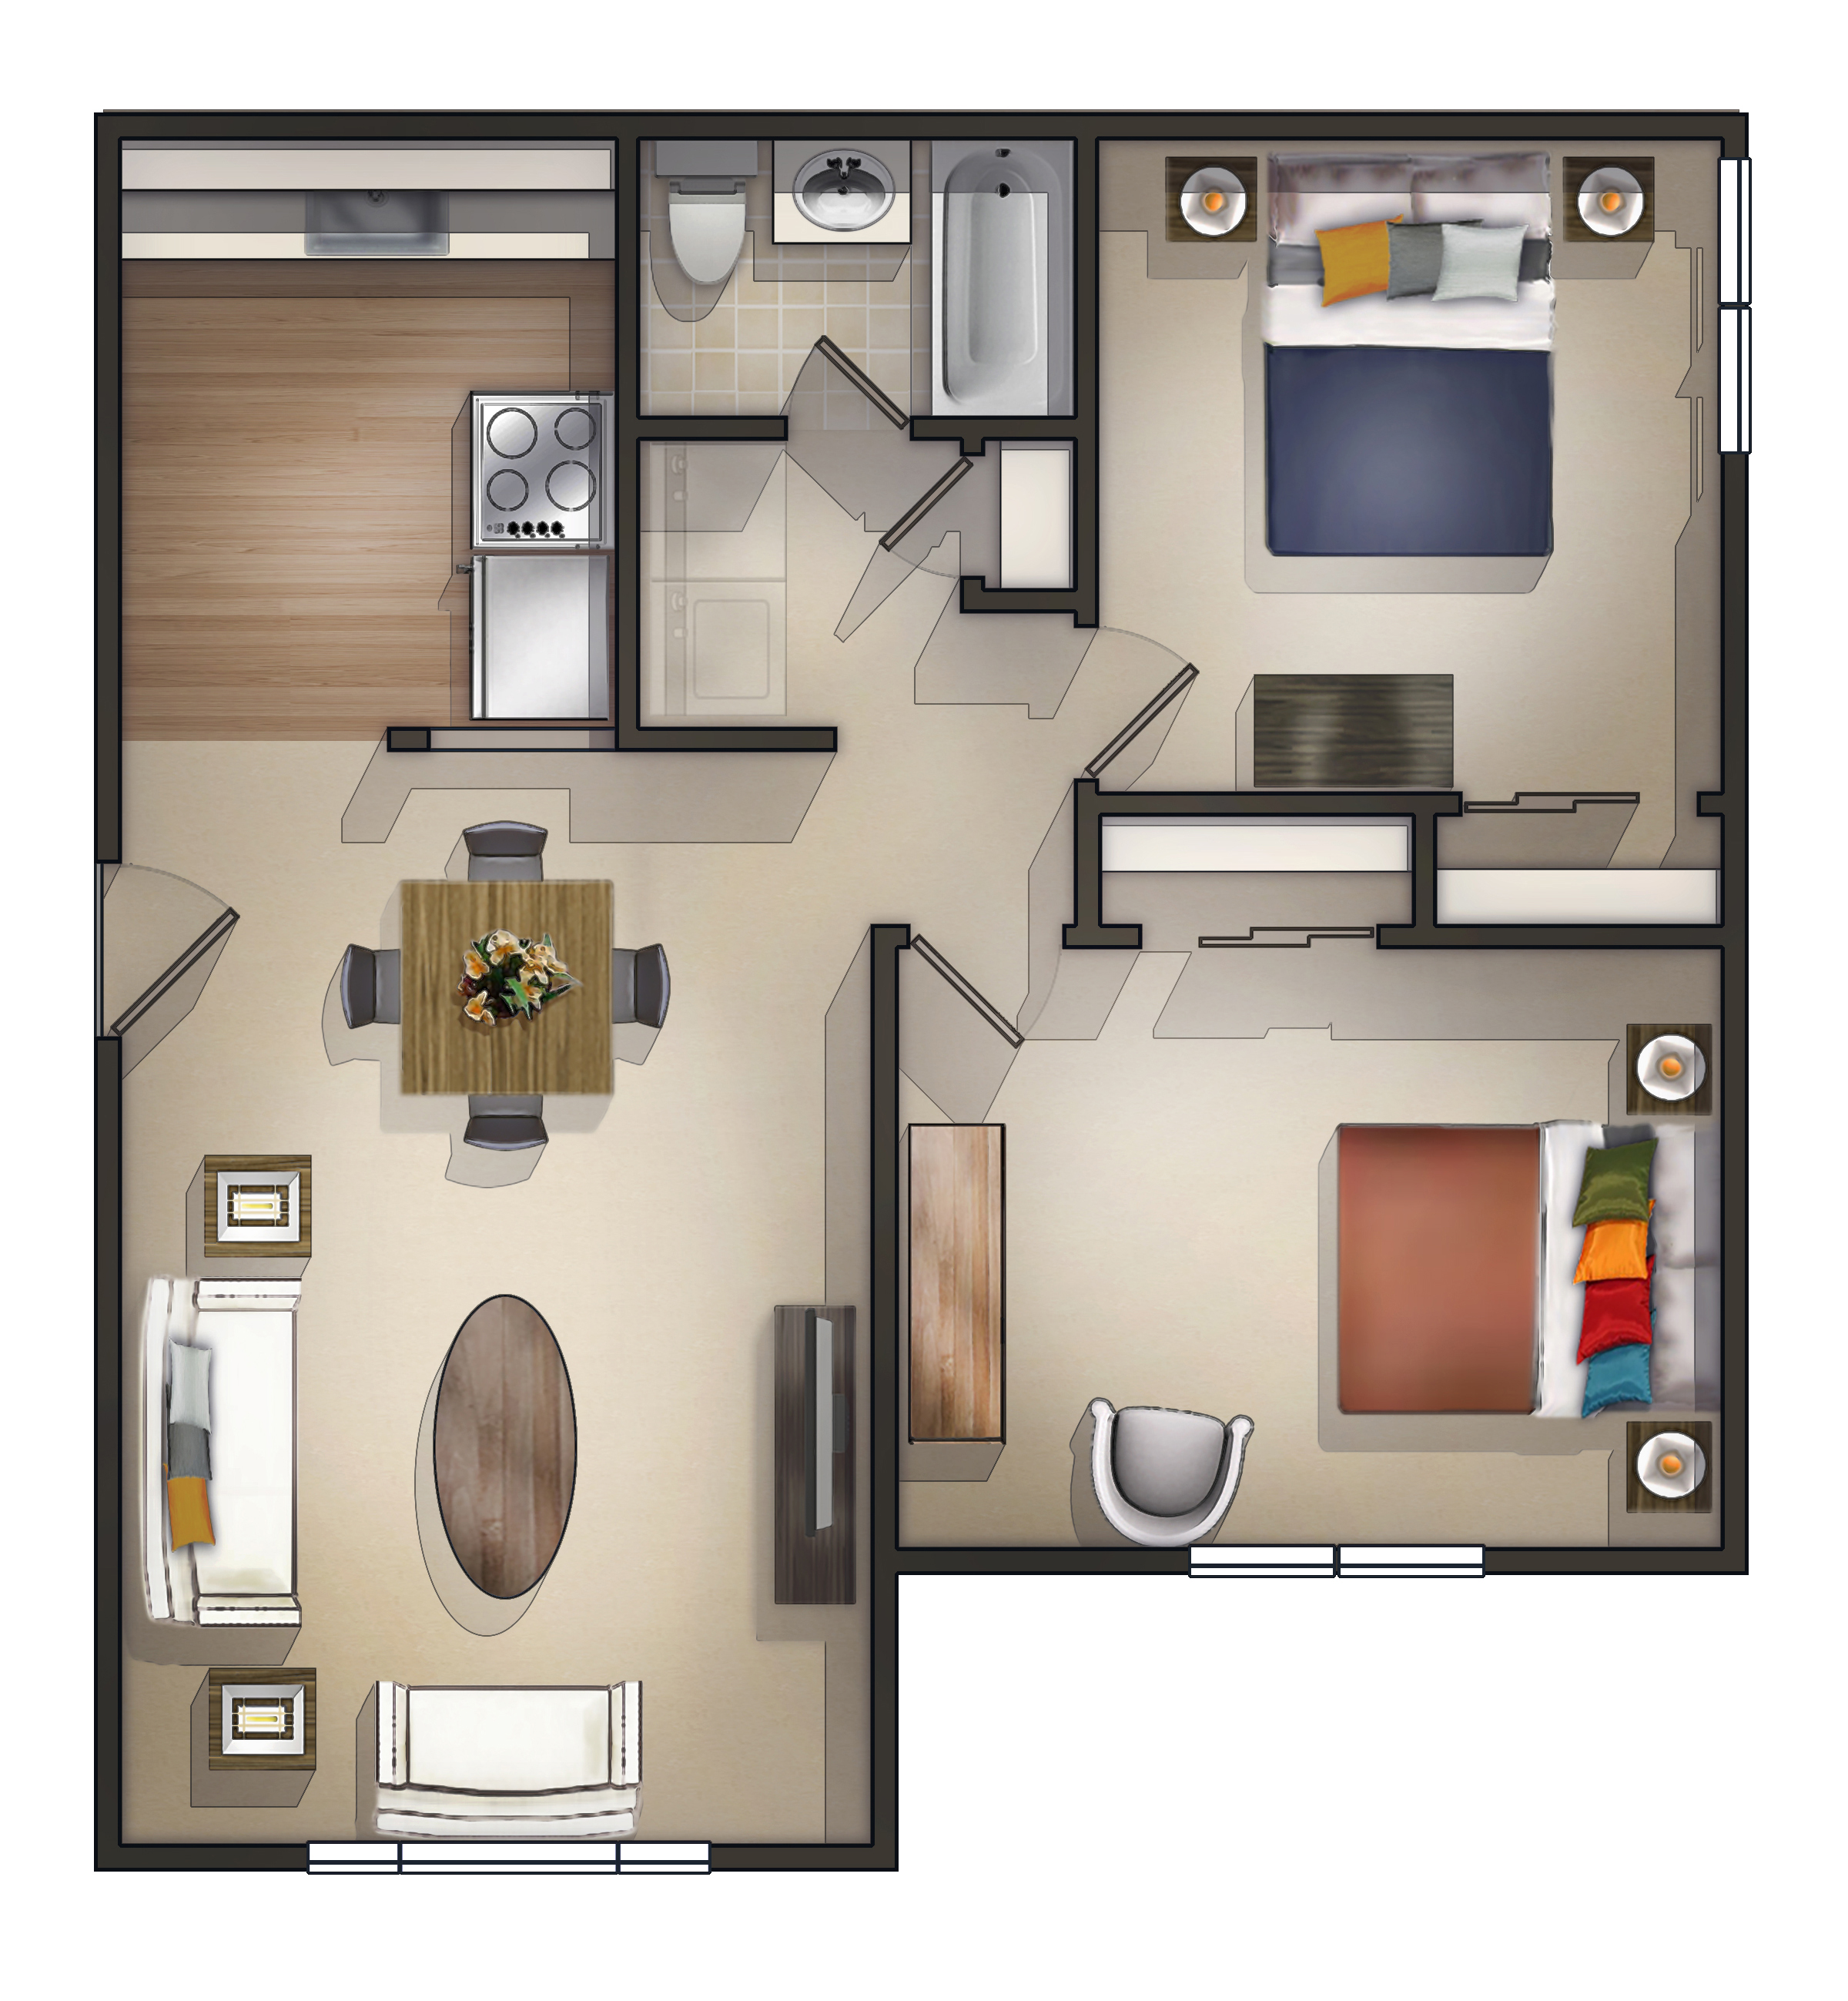 2 Bedroom Apartment Floor Plan   Sanford Manor Apartments  Maine. 2 Bedroom Apartment in Sanford ME at Sanford Manor Apartments